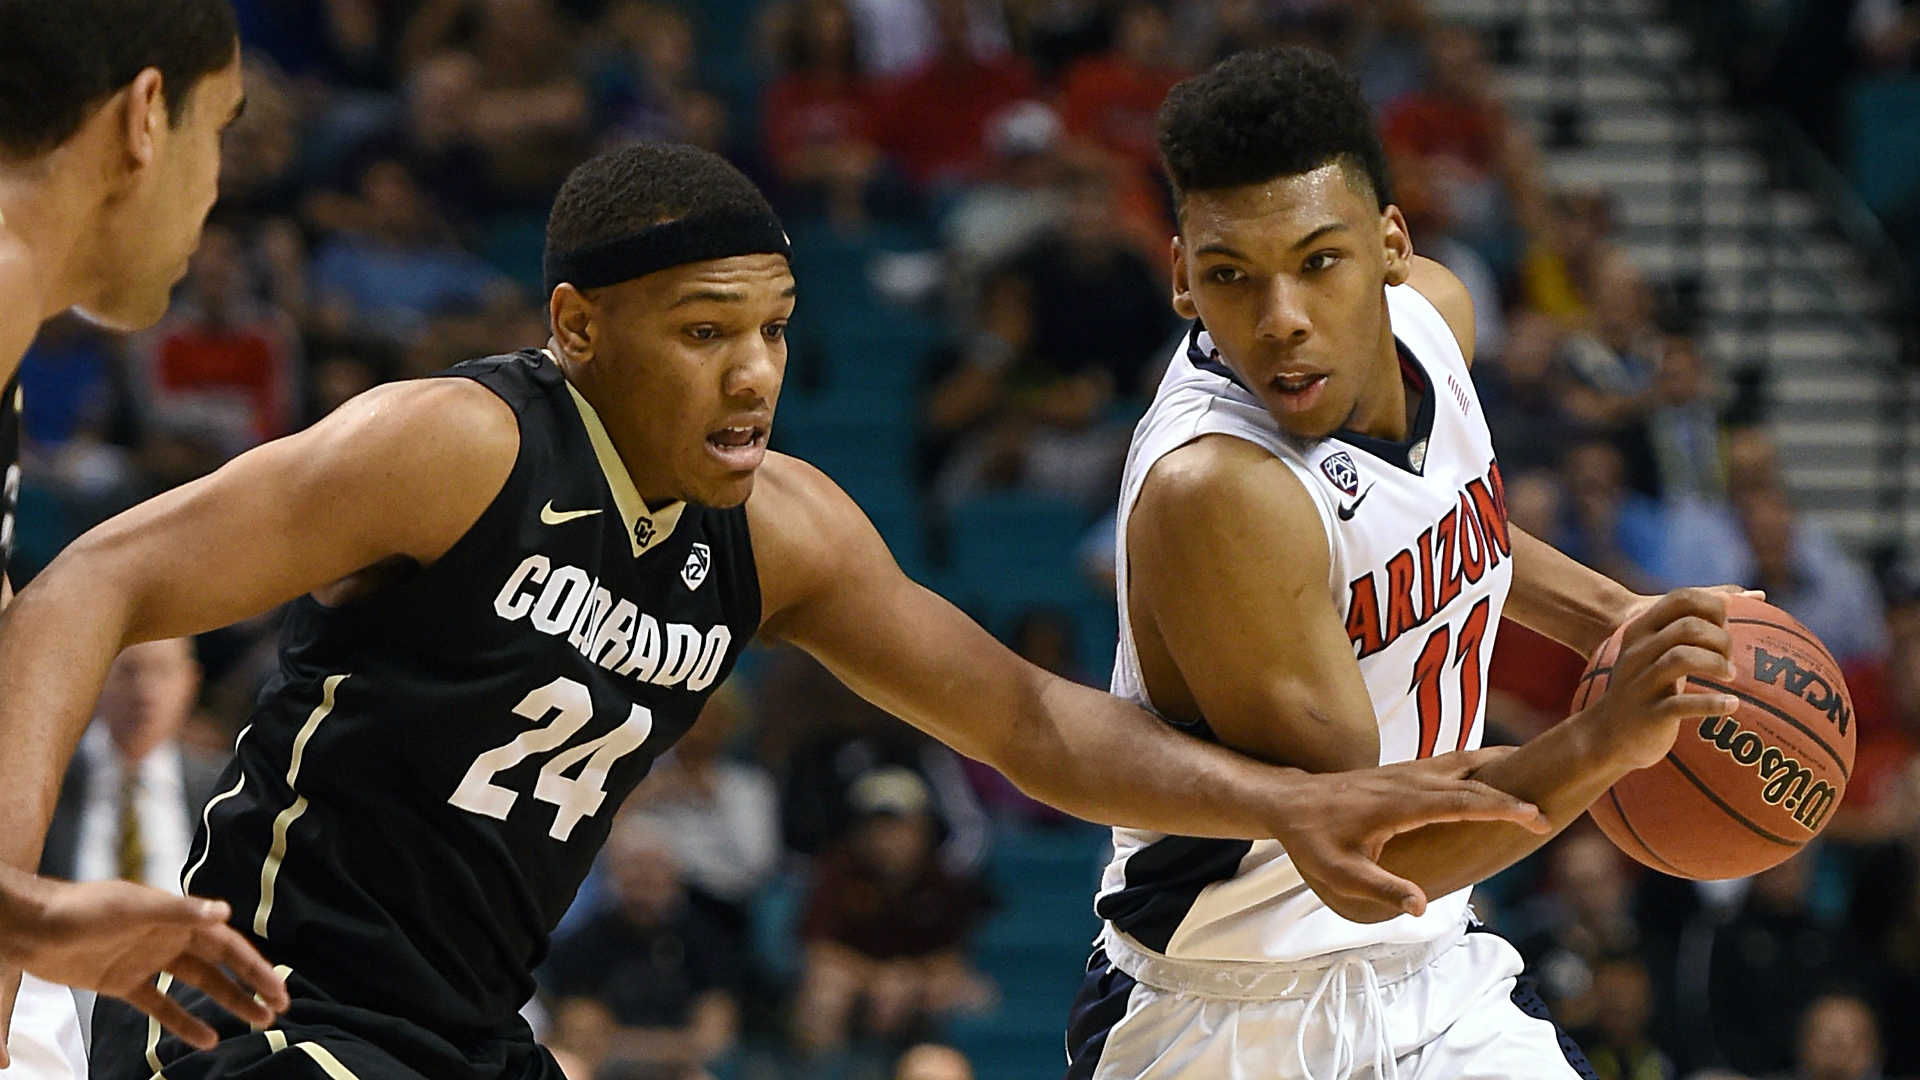 Allonzo-trier-052816-getty-ftr_1dwrzsprz20bp108jbvcyw42e1